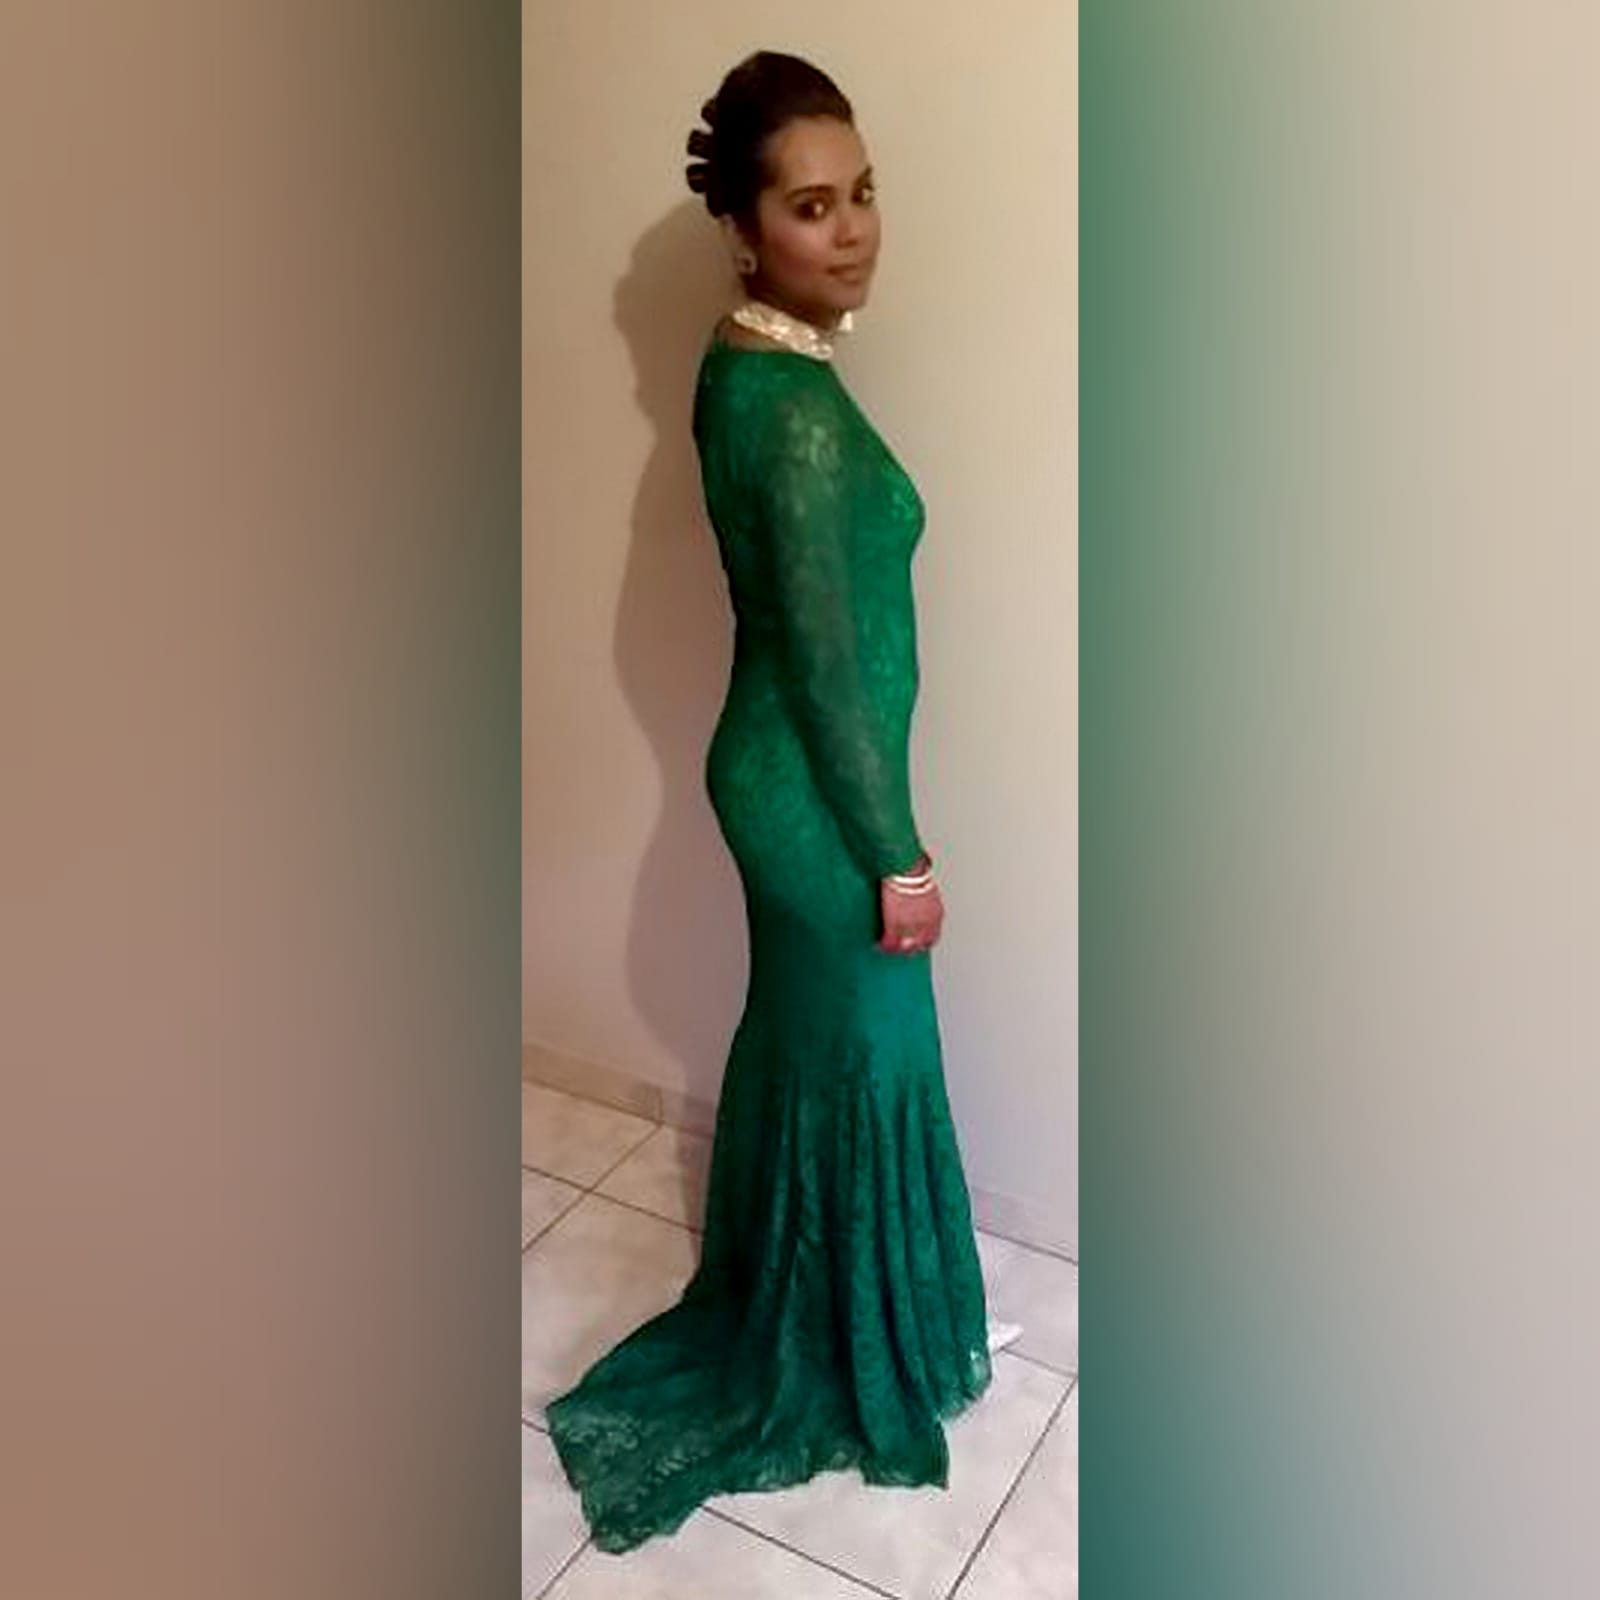 Emerald green fully laced soft mermaid evening dress 6 emerald green fully laced soft mermaid evening dress for an engagement party, with long sleeves